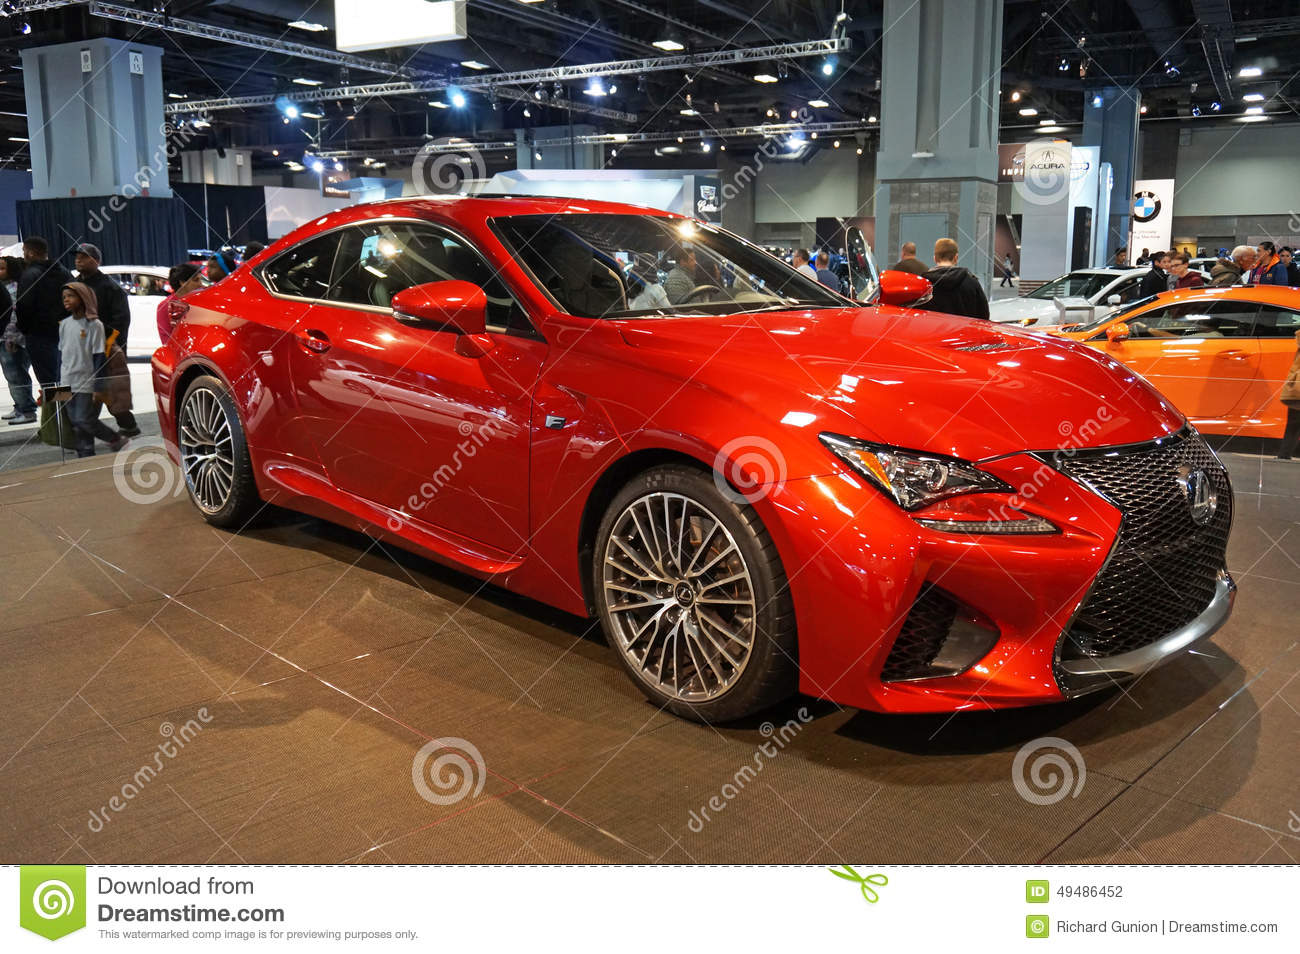 Red Lexus Rc F Sports Car Editorial Photography Image Of Though